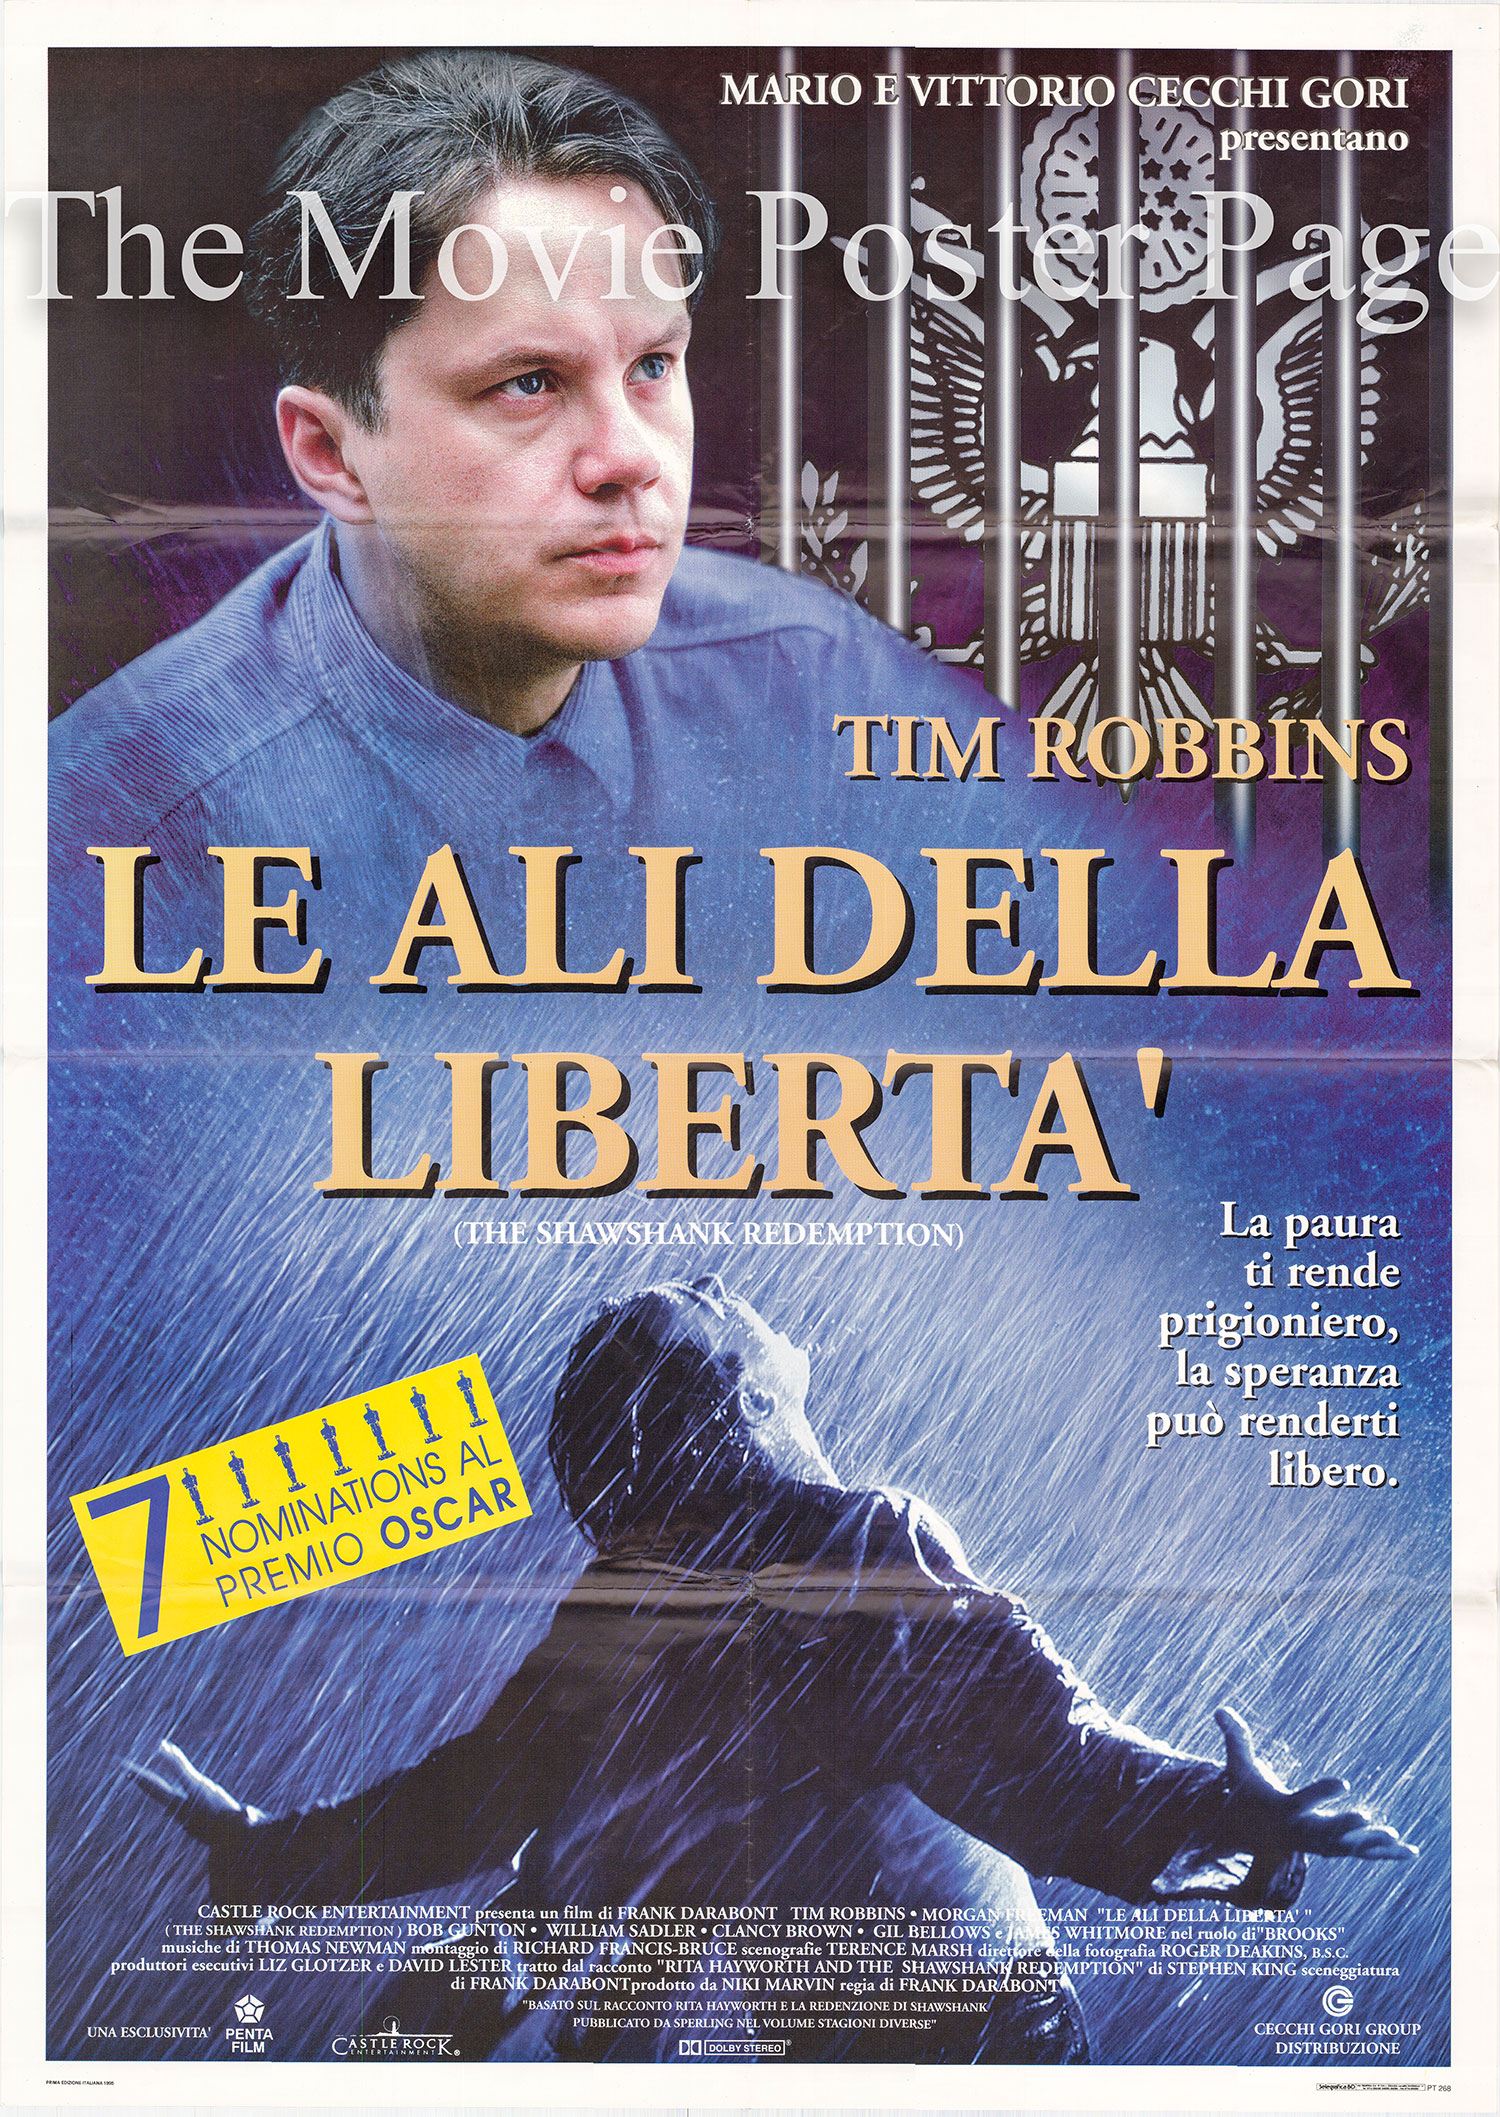 Pictured is an Italian two-sheet promotional poster for the 1995 Frank Darabont film <i>The Shawshank Redemption</i> starring Tim Robbins as Andy Dufresne.